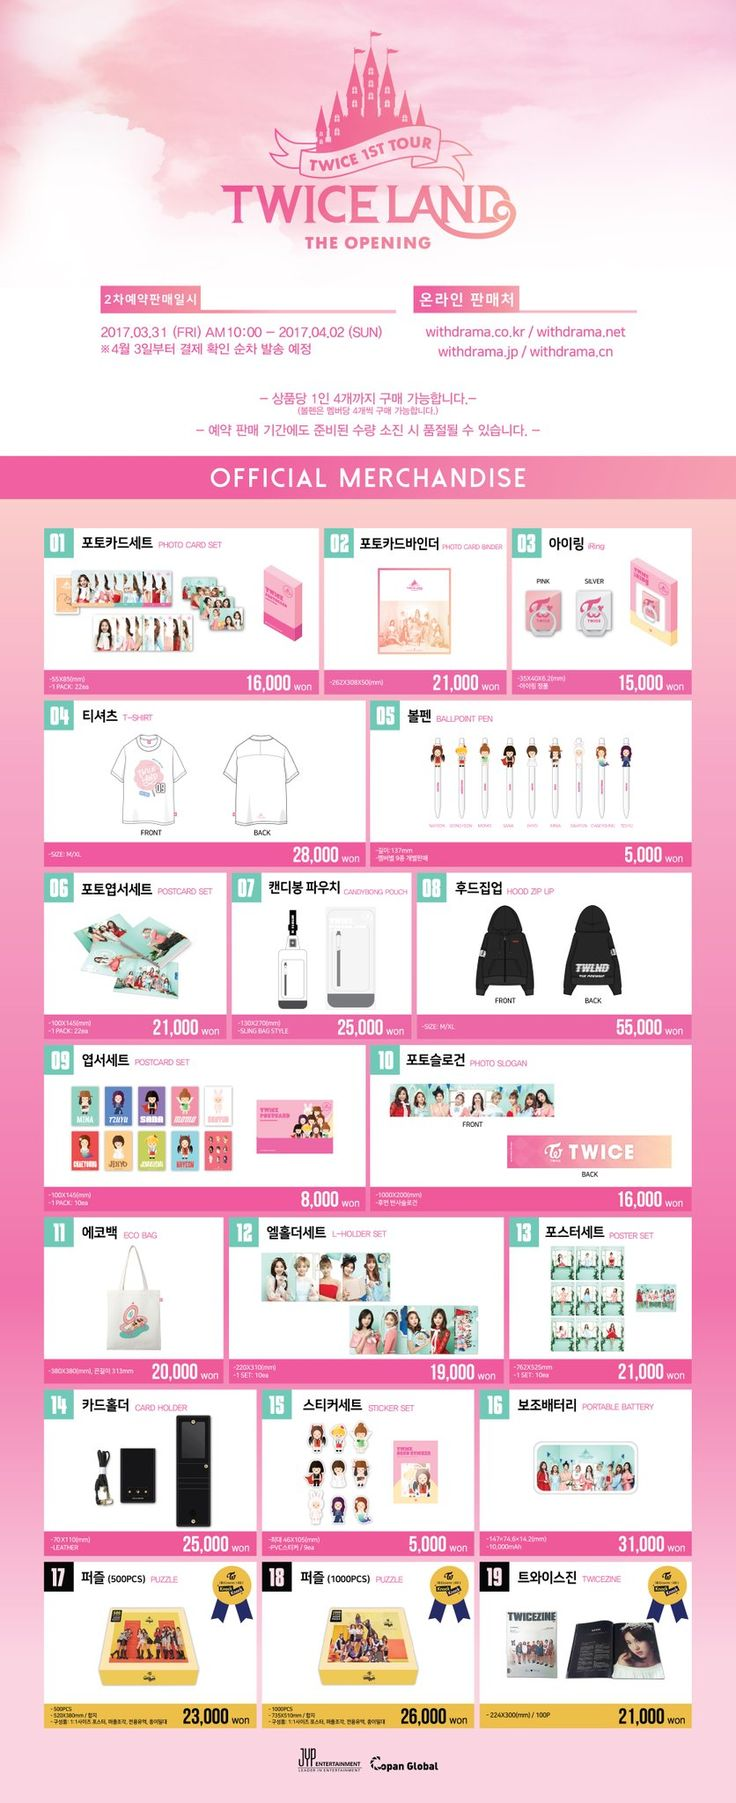 TWICE retweeted:       TWICELAND - The Opening - OFFICIAL MD ONLINE SALE  LAST PRE-ORDER  2017.03.31 - 04.02  m.withdrama.co.kr  #TWICE #트와이스 #TWICELAND